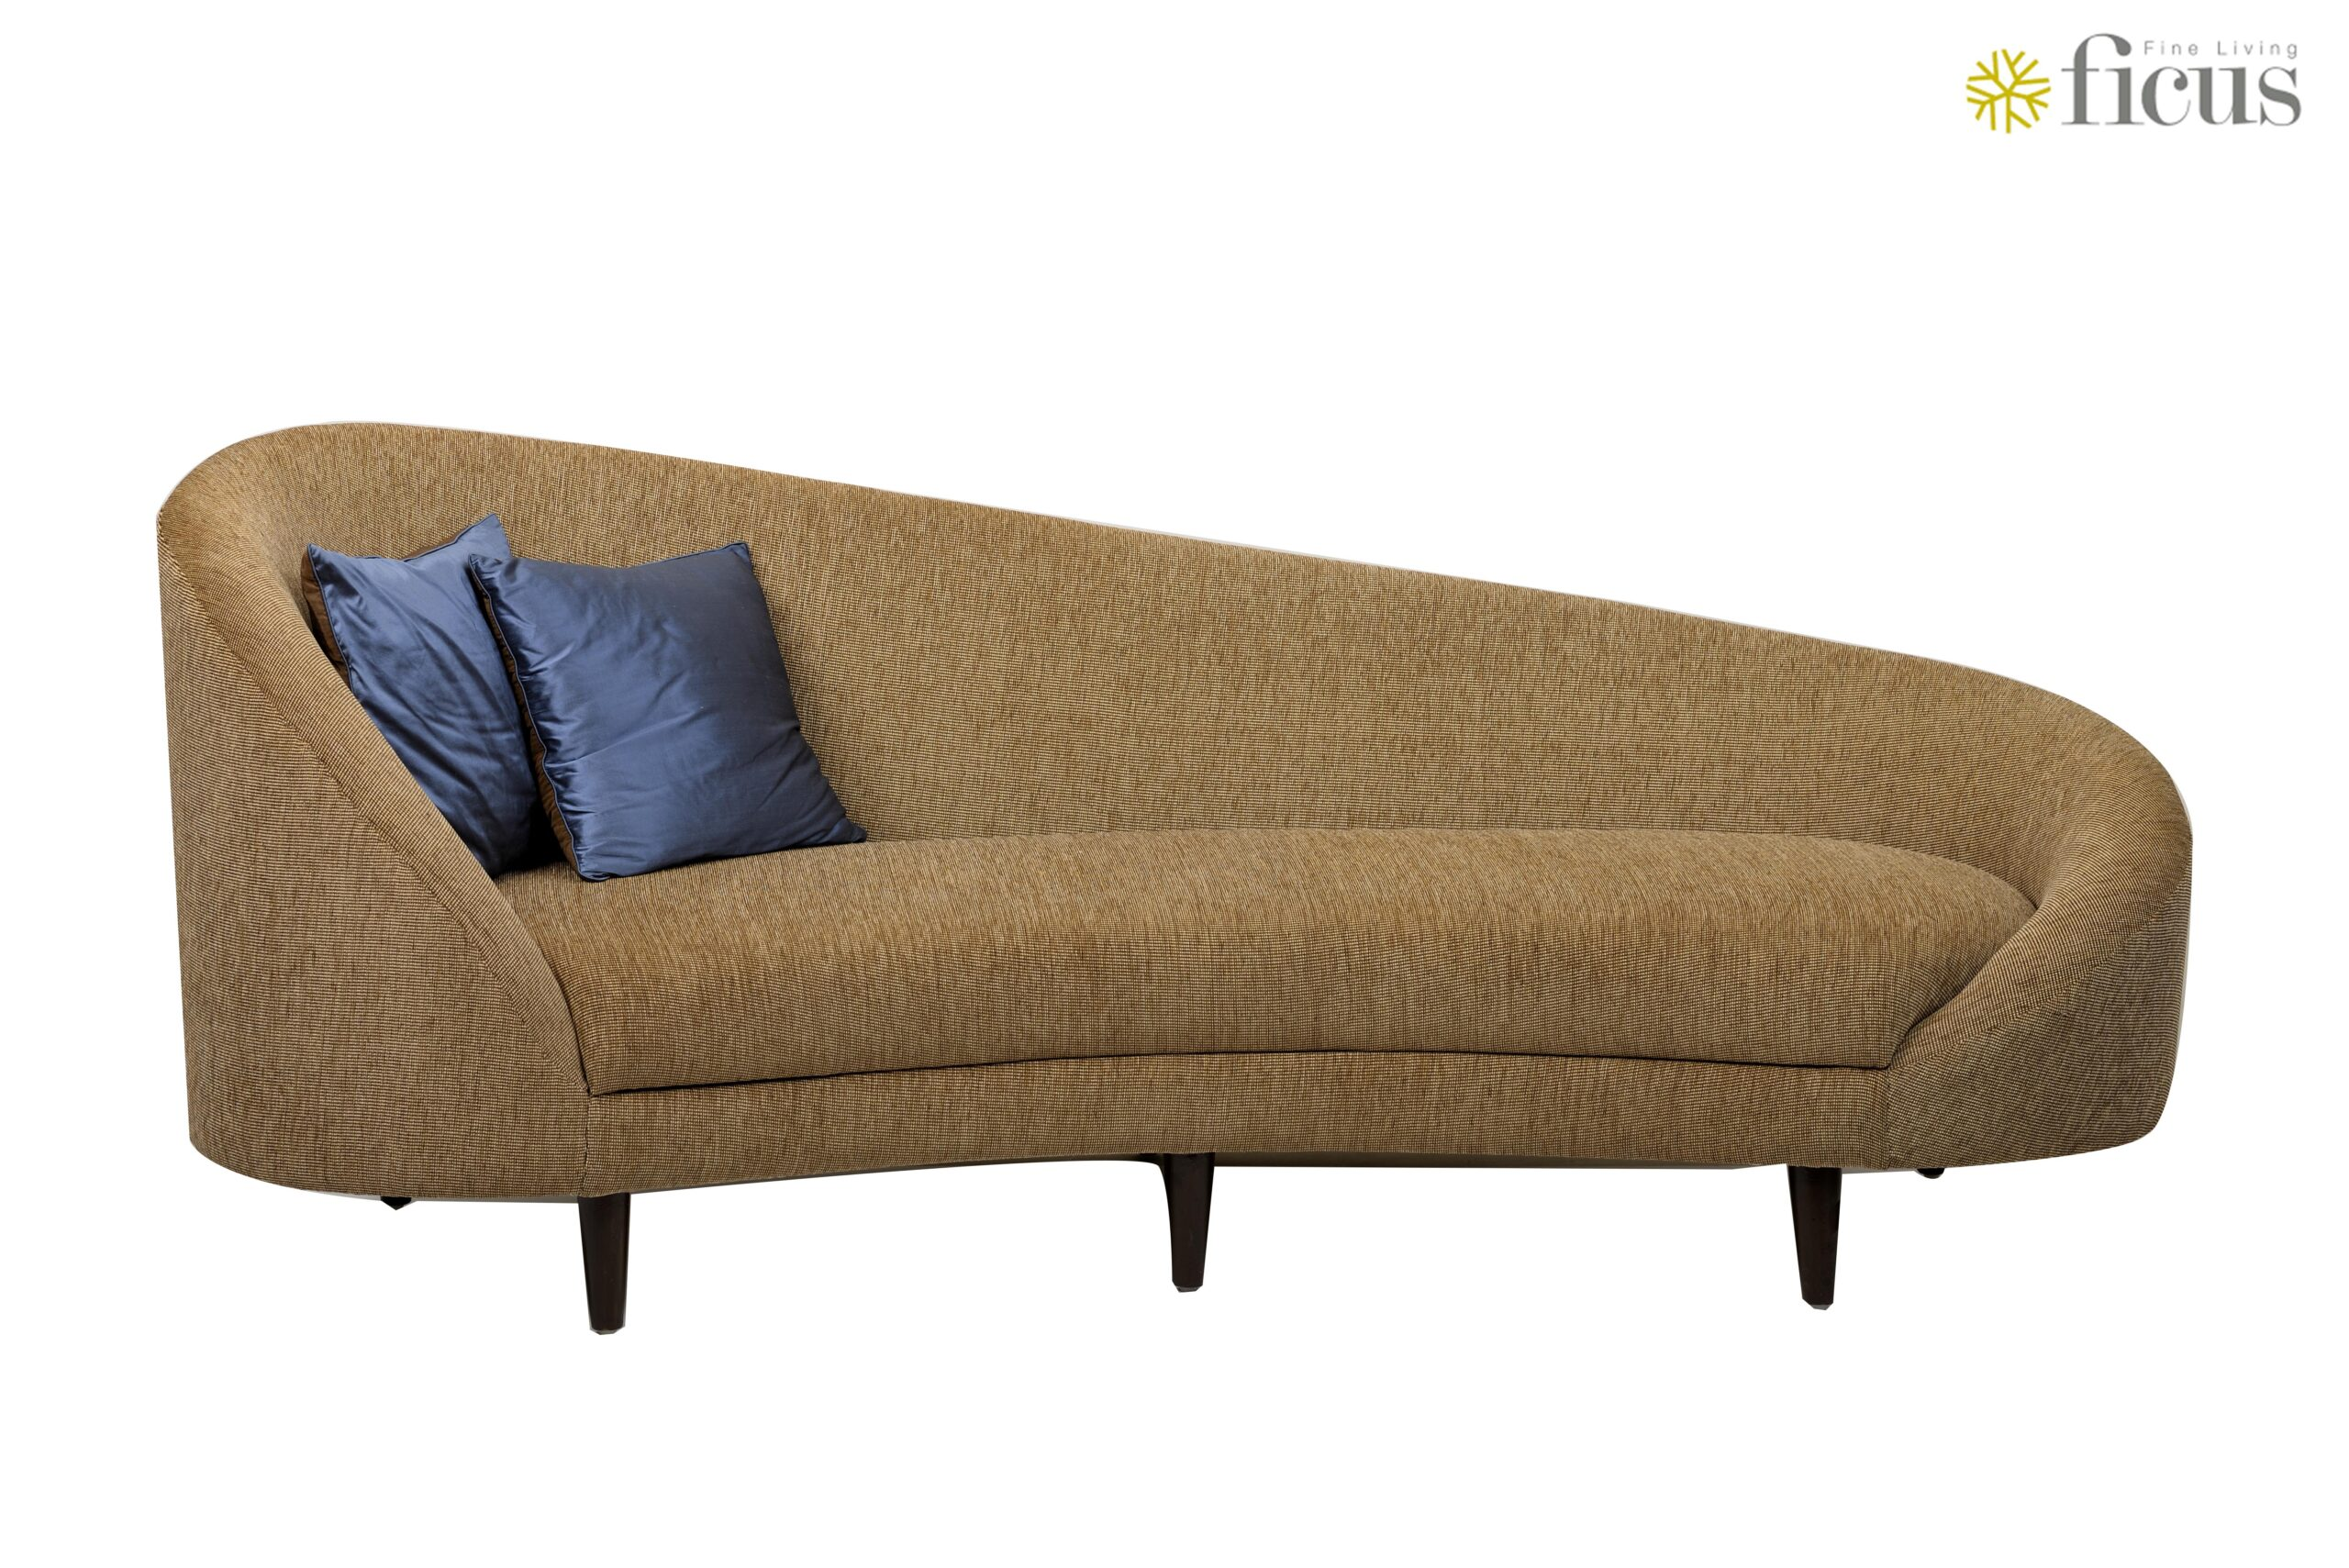 Beautify your Home with Ficus Fine Living Sofa